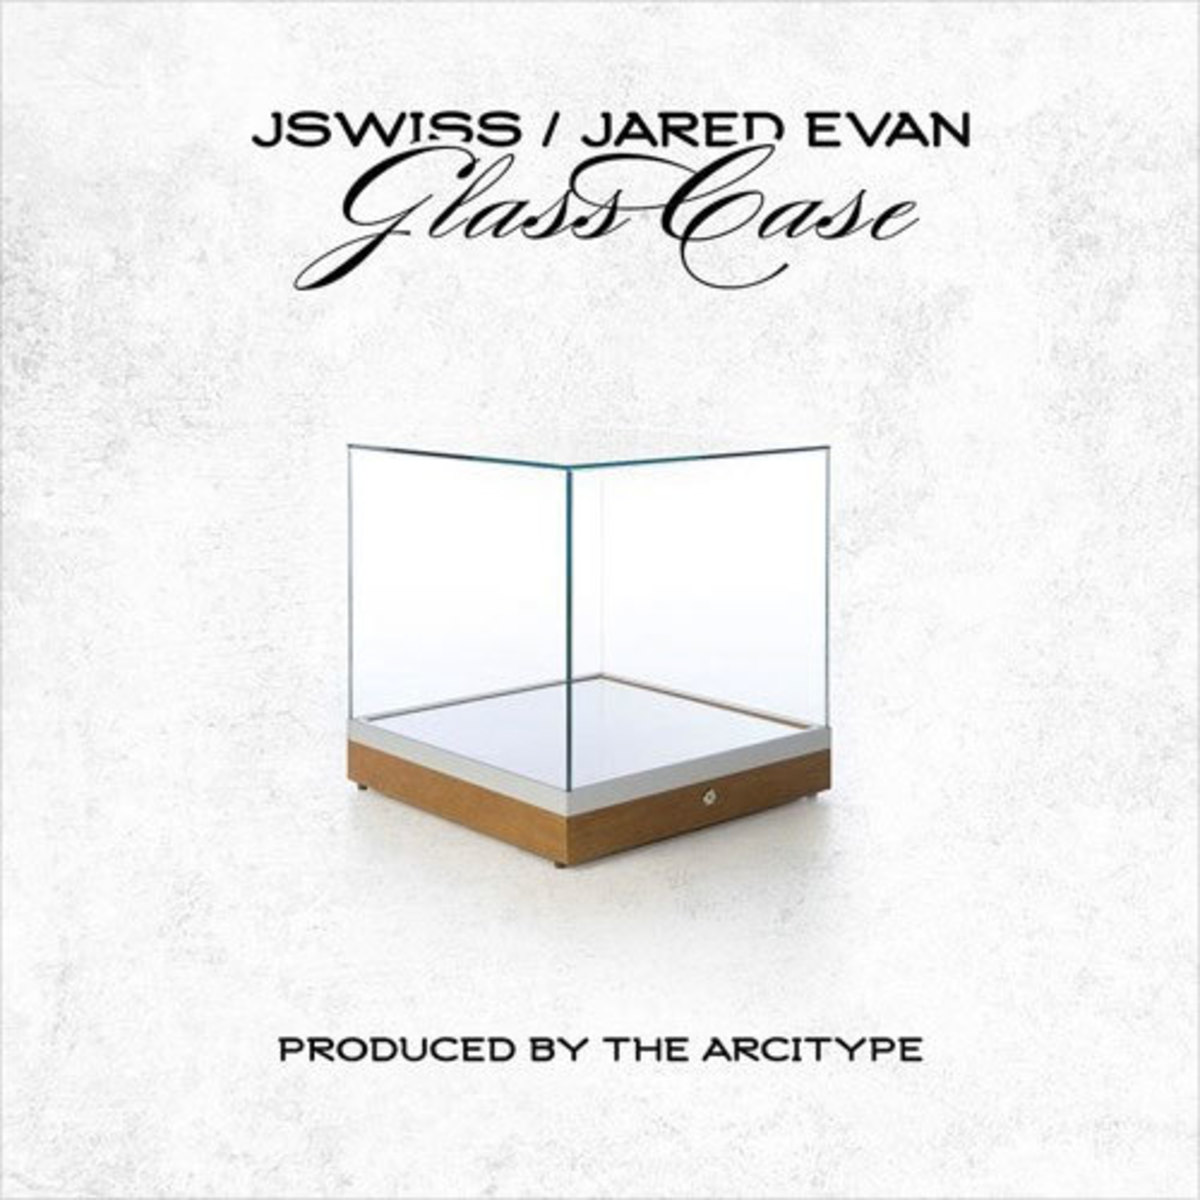 jswiss-jared-evan-glass-case.jpg